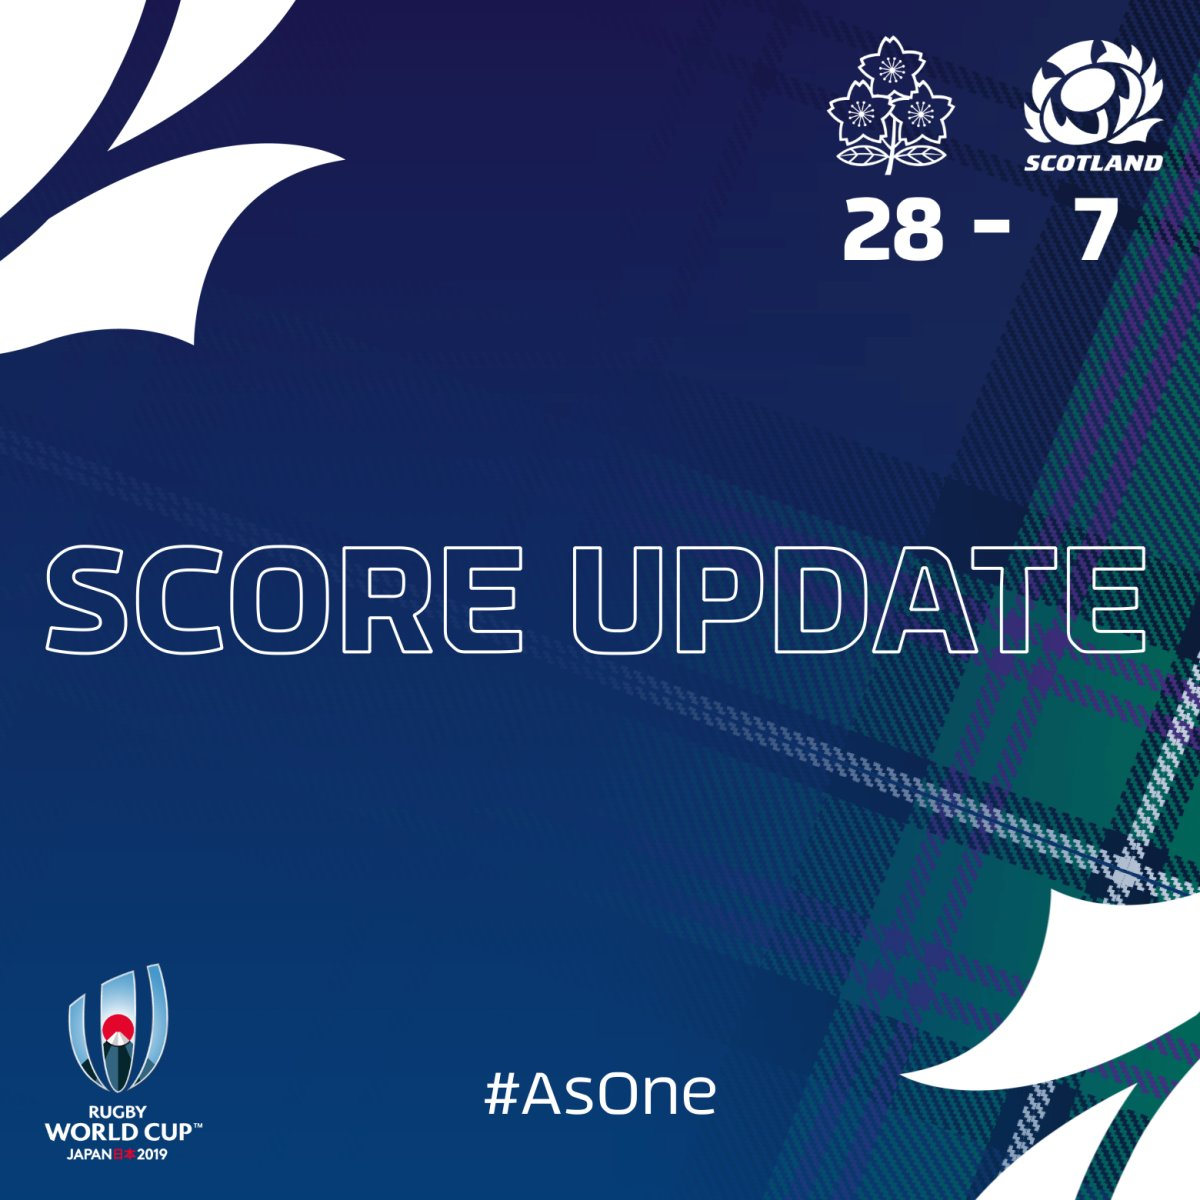 JPNvSCO | Japan start the second half with a try, 28 - 7. 📲 Follow the game using our match centre at bit.ly/2IKnqGI